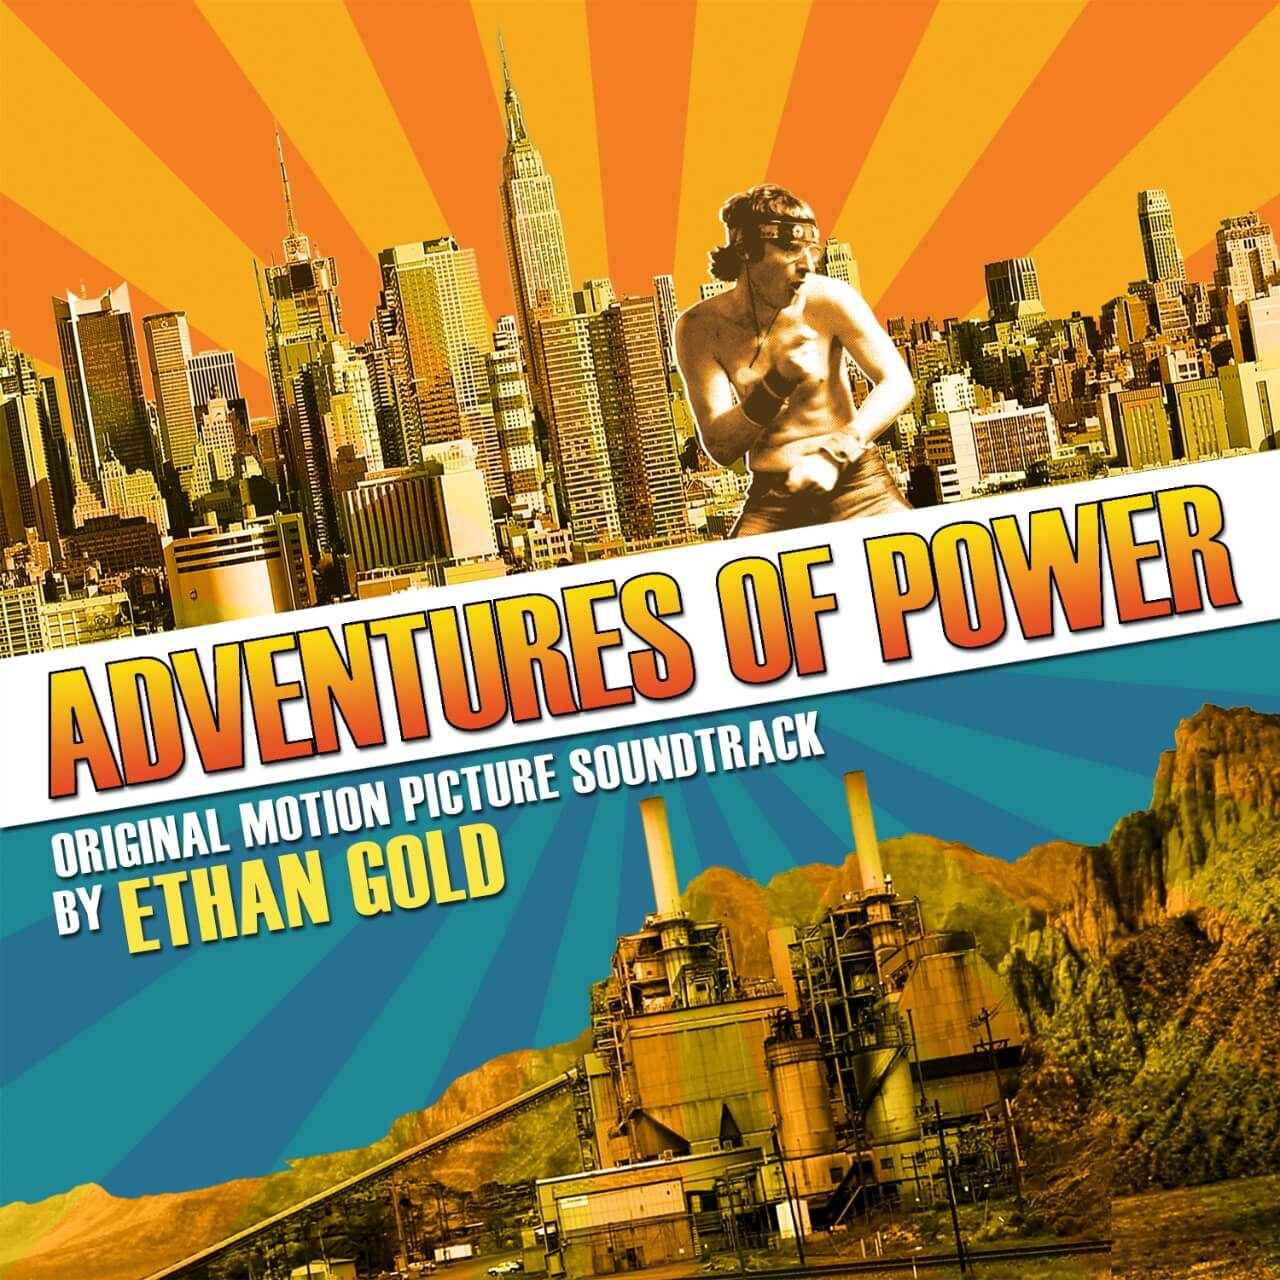 PRESS RELEASE – Adventures of Power (Original Motion Picture Soundtrack) Re-Release